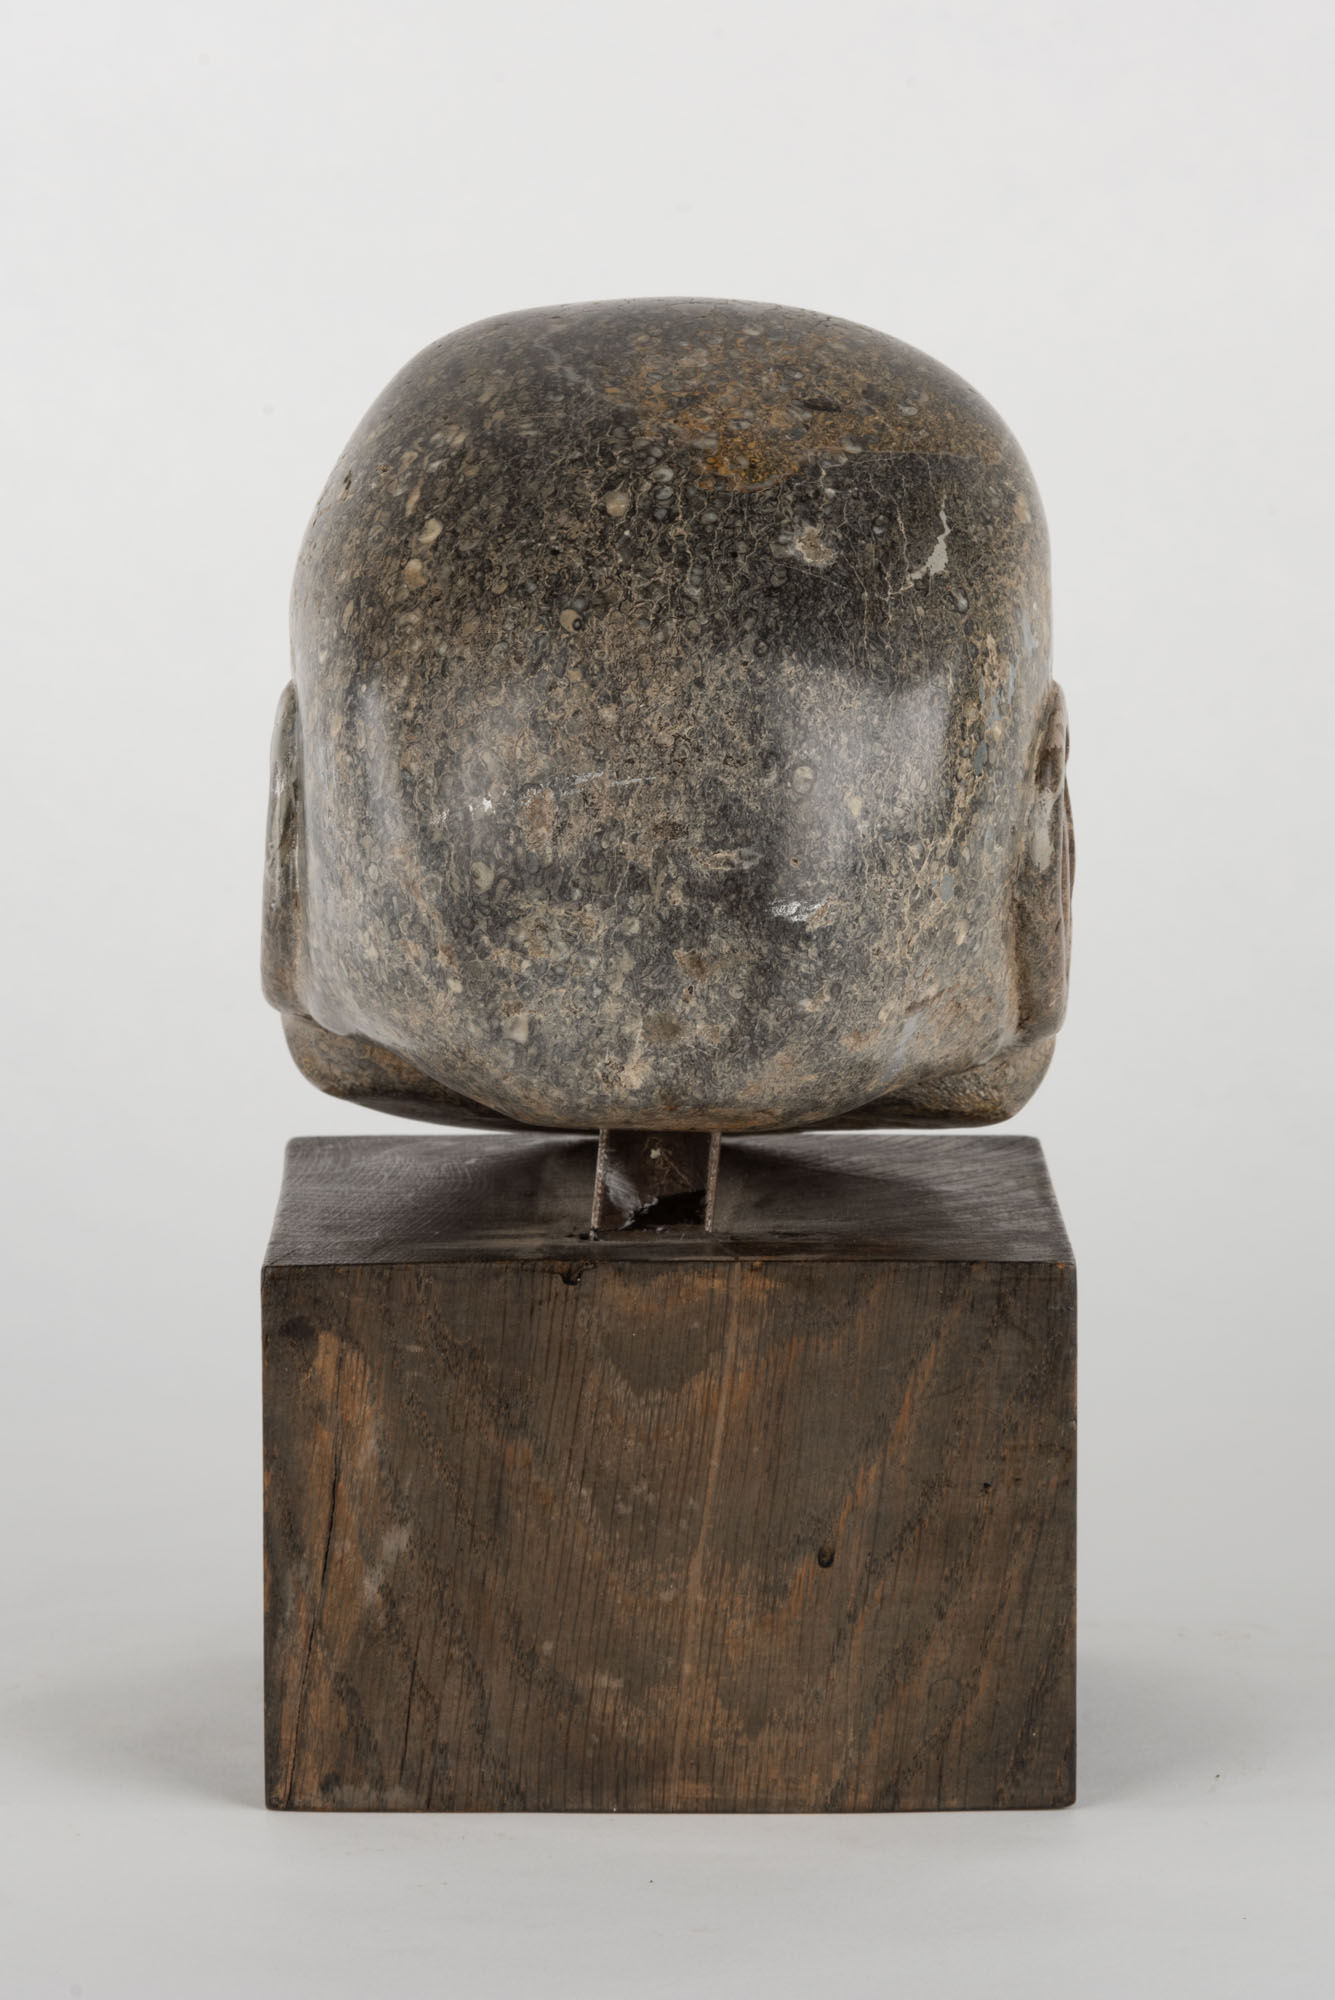 Untitled (Head) by Jack Coutu 1924 - 2017